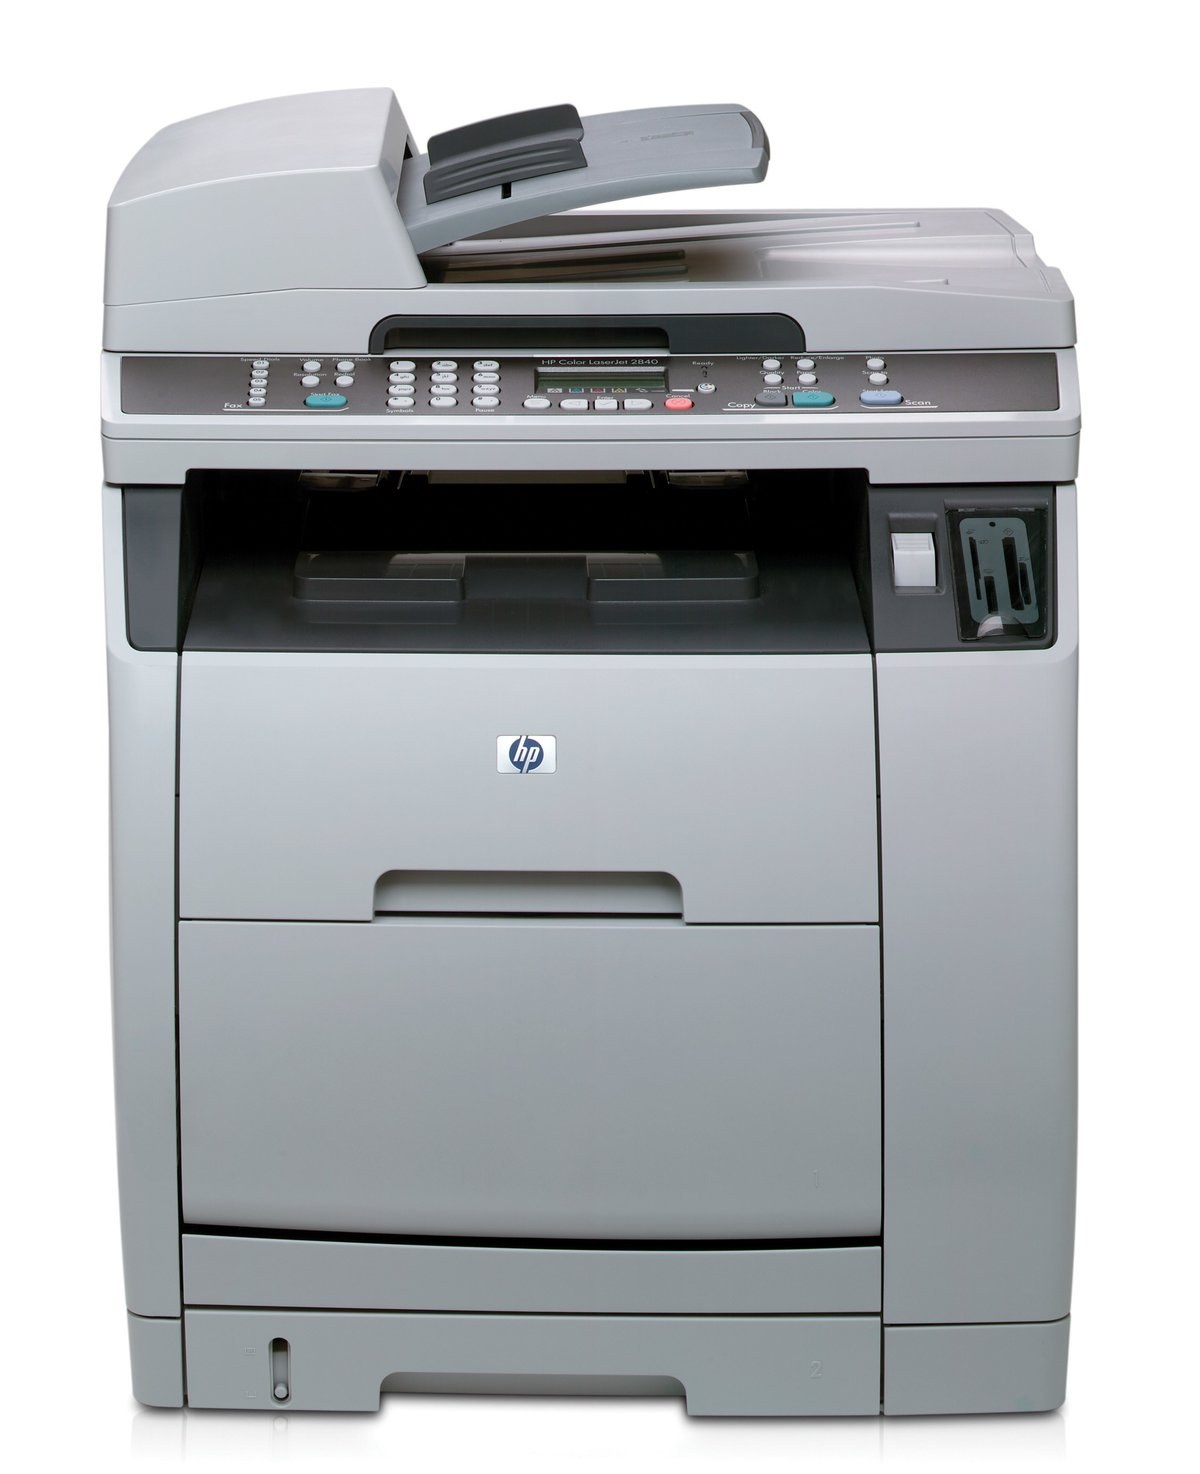 slide 1 of 3,show larger image, hp color laserjet 2840 all-in